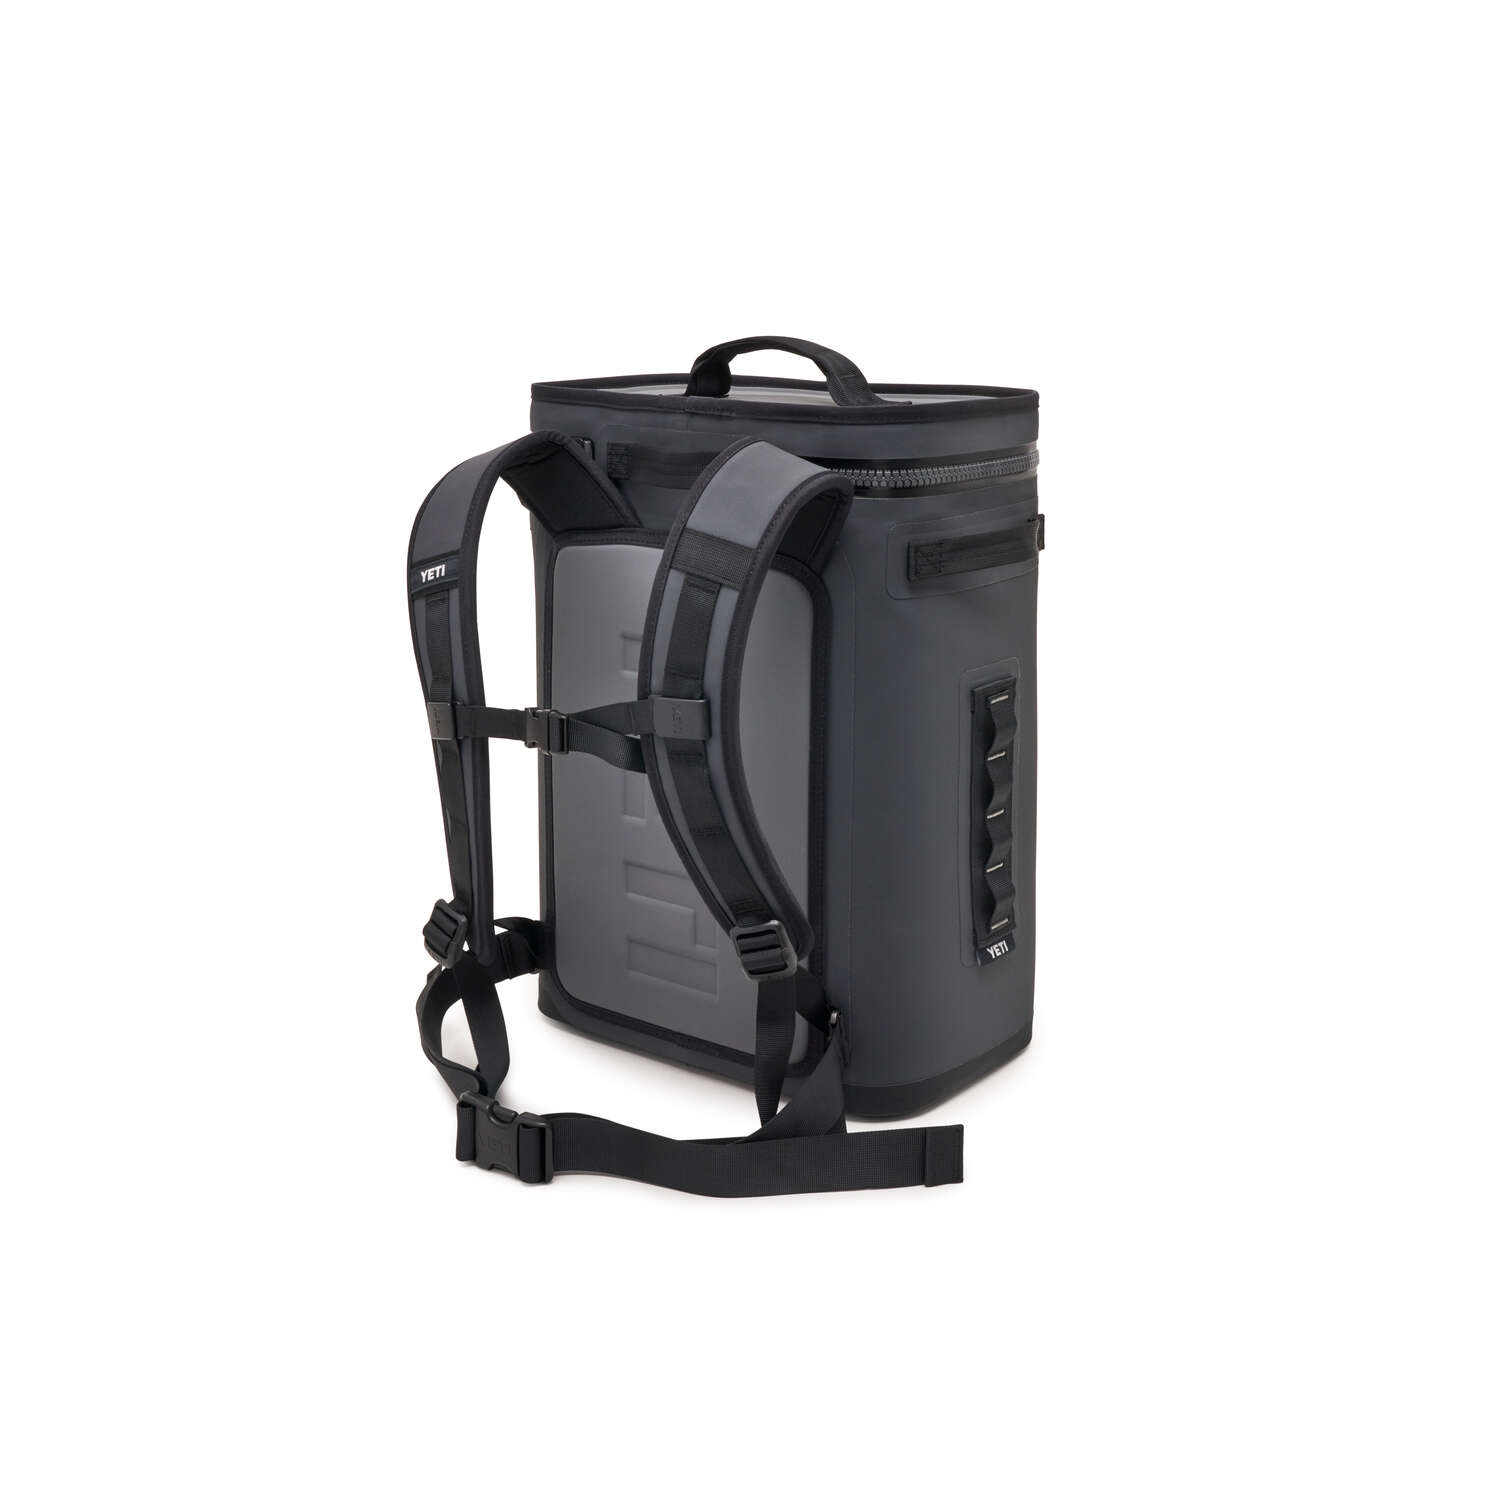 YETI  Hopper BackFlip 24  Cooler Bag  Charcoal